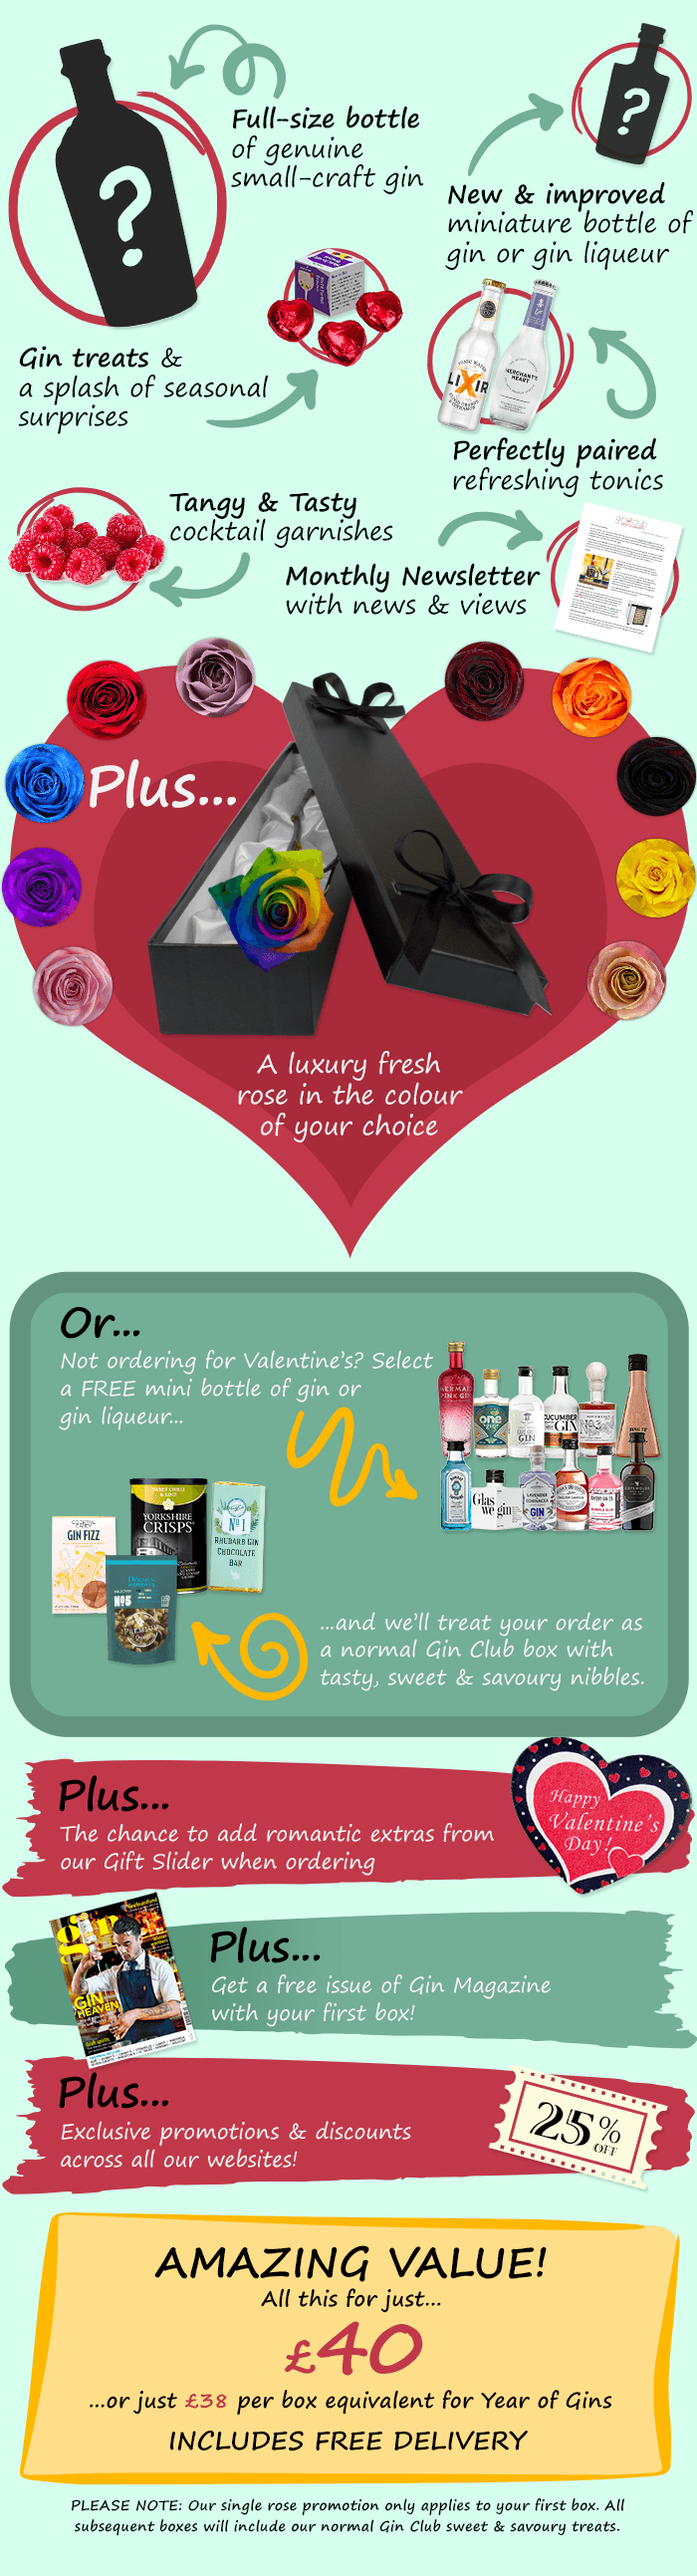 Valentine's Day Gin Club contents